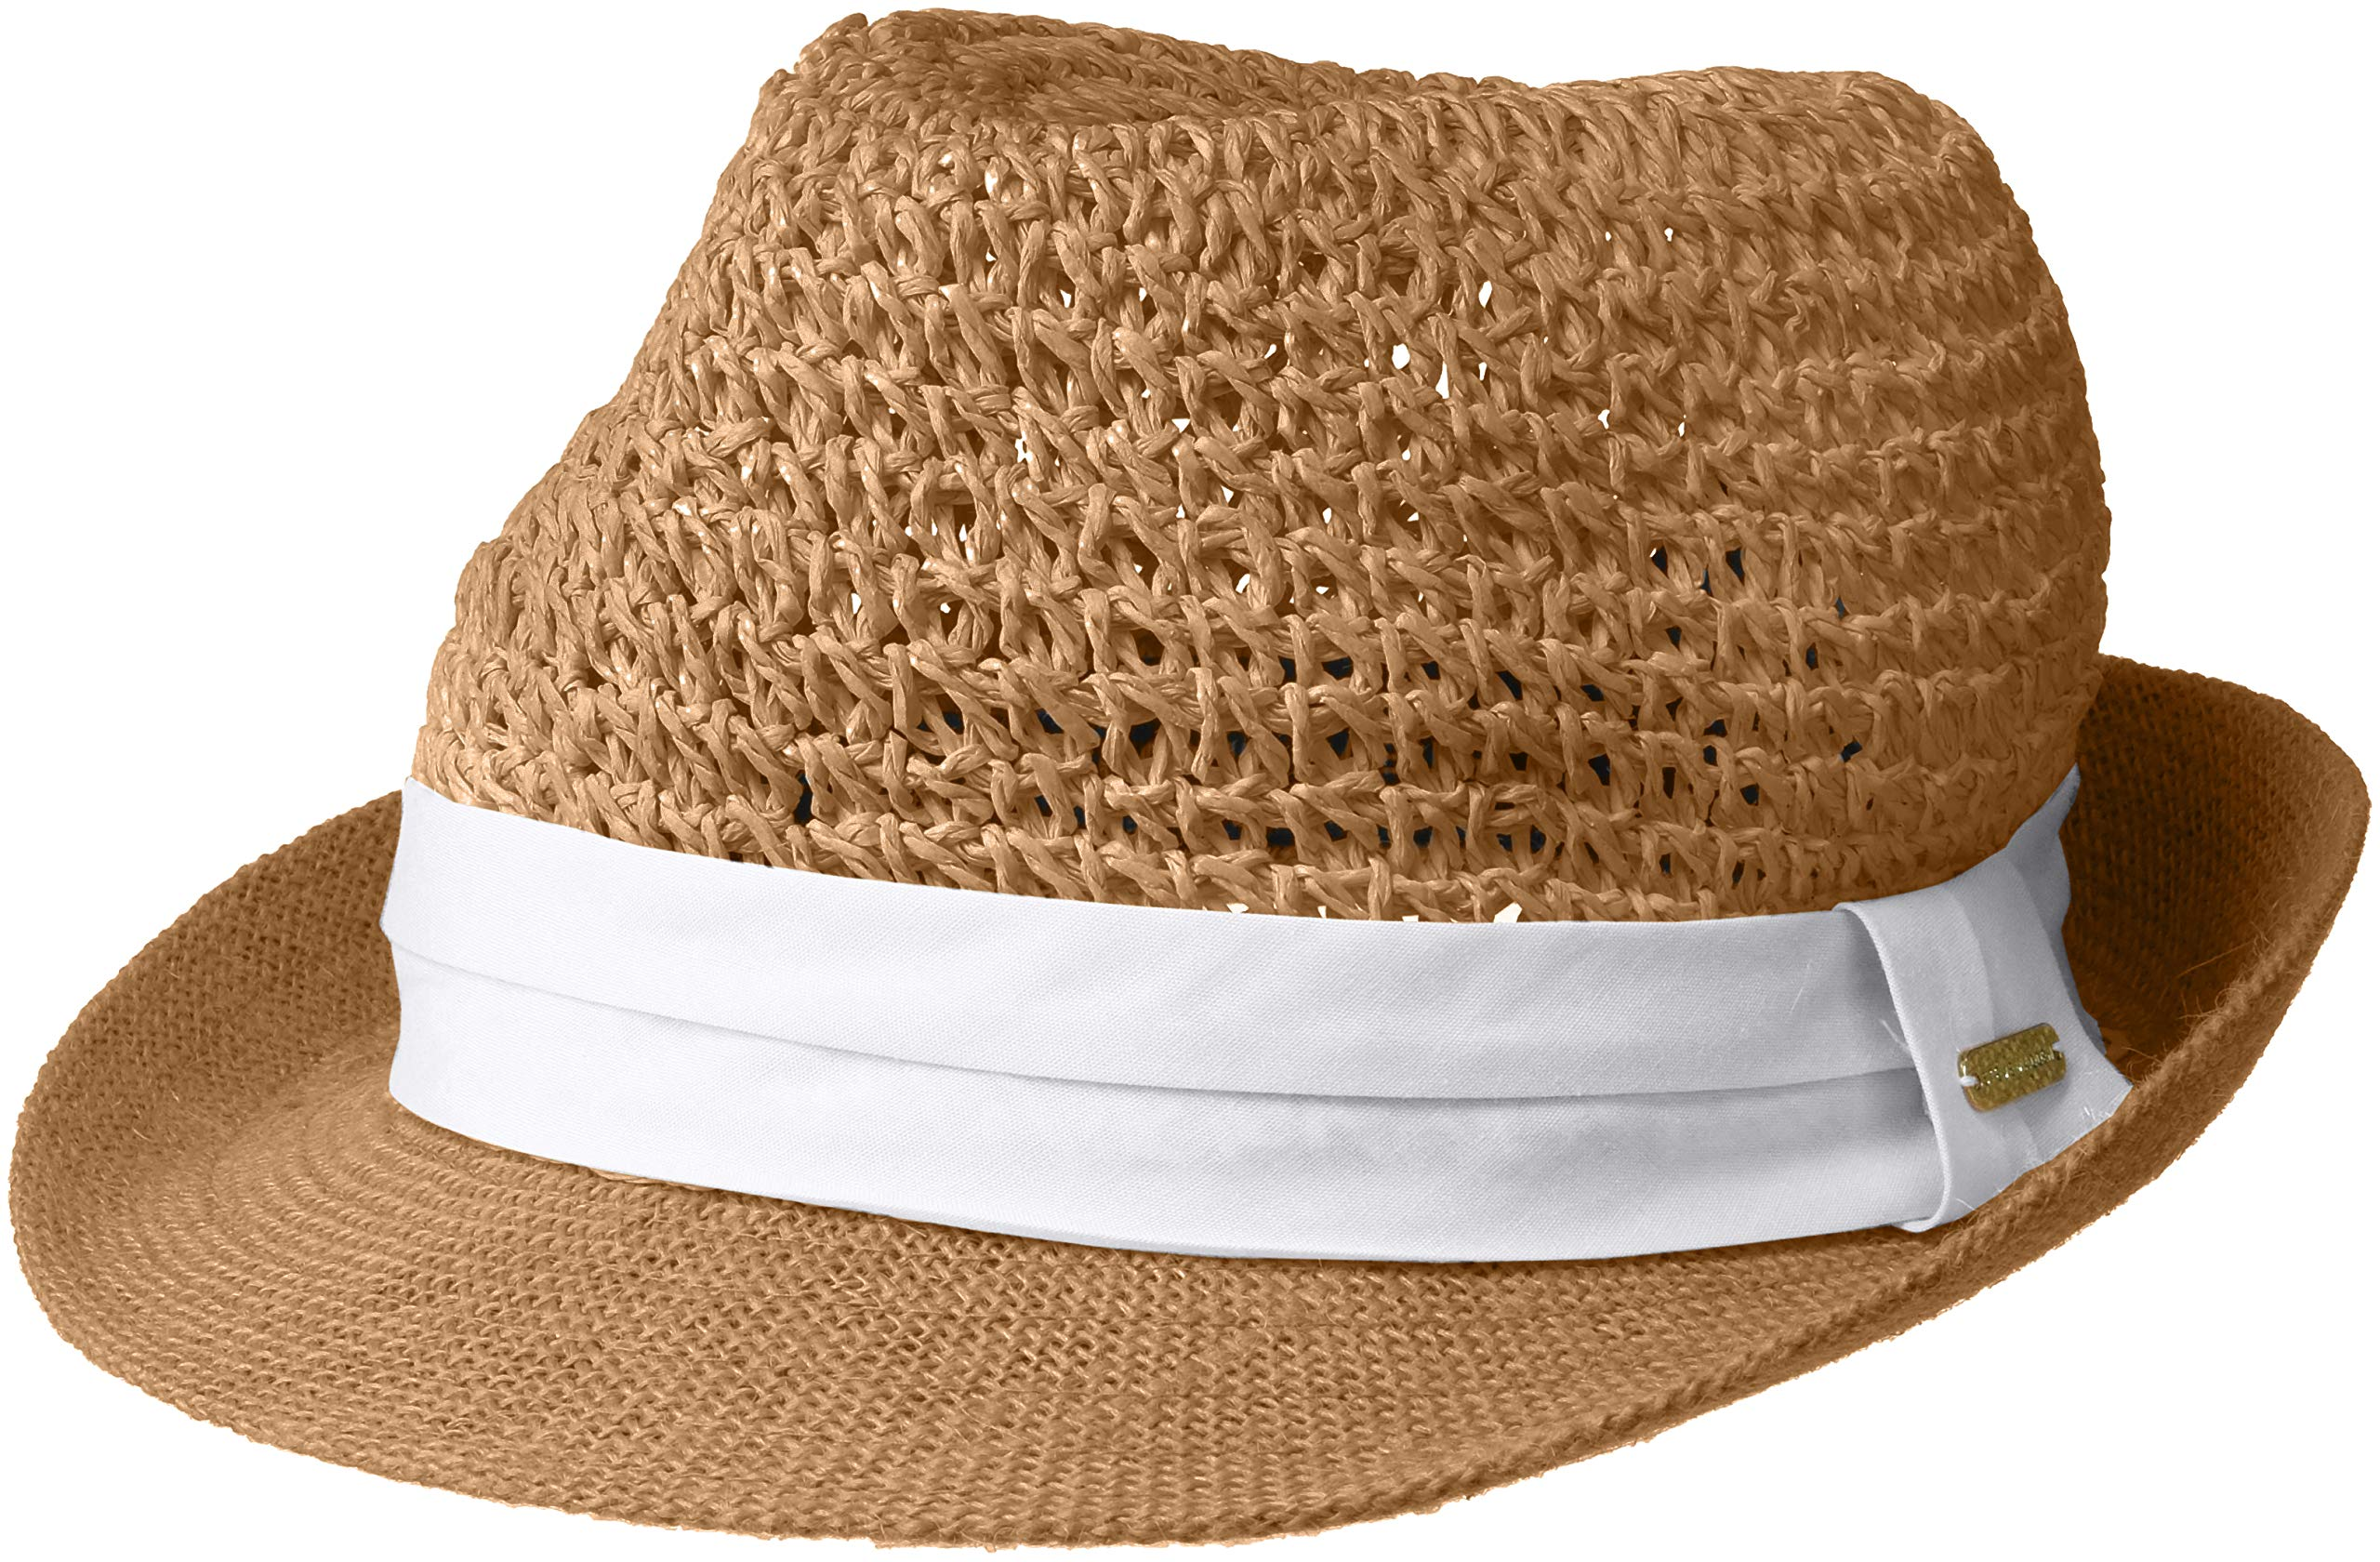 Steve Madden Women's Paper Crochet Straw Fedora with Woven Band, White, One Size